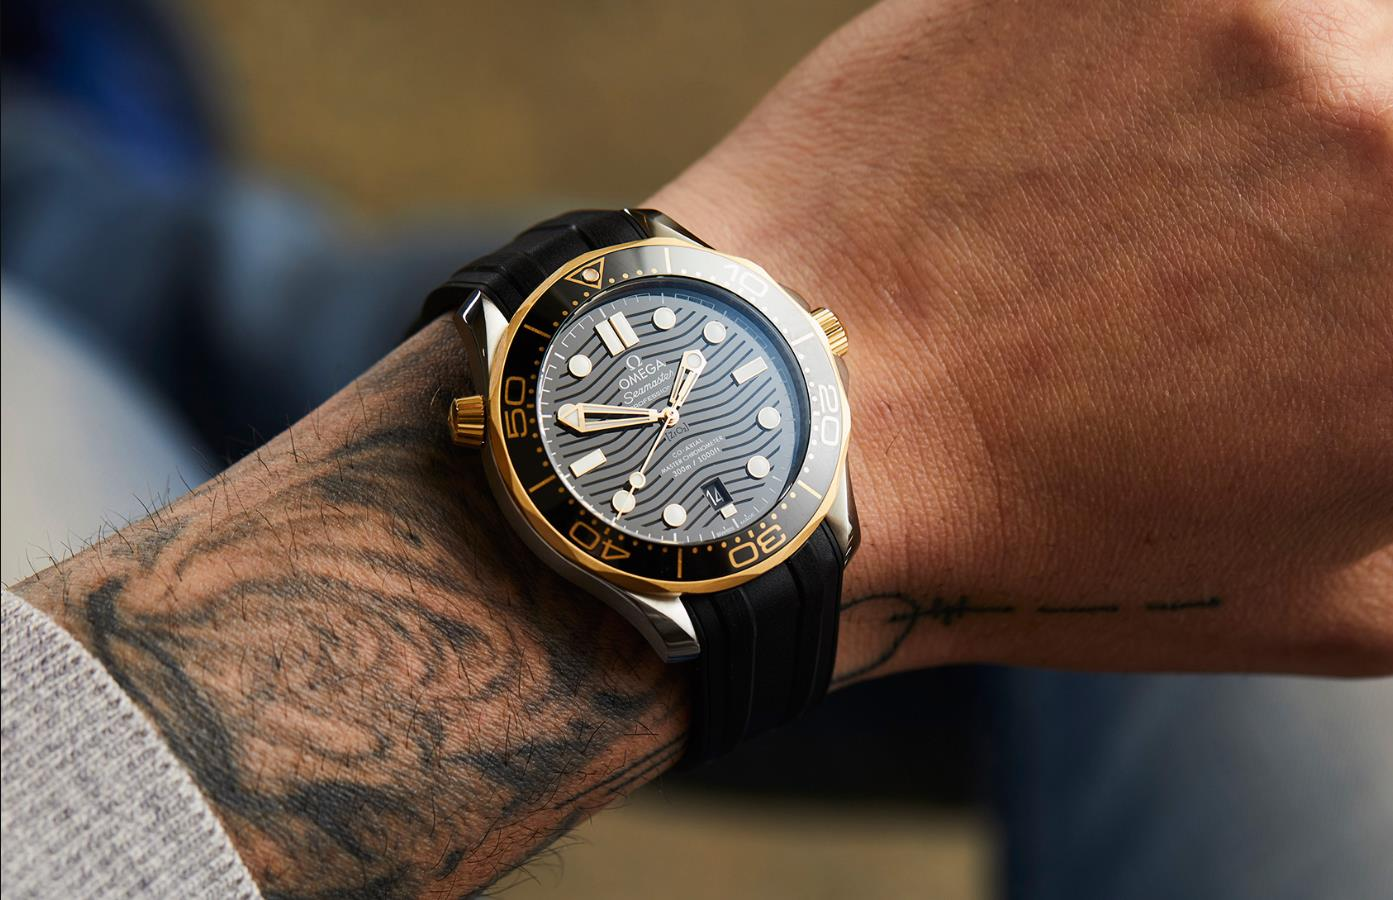 The black strap replica watch is designed for men.